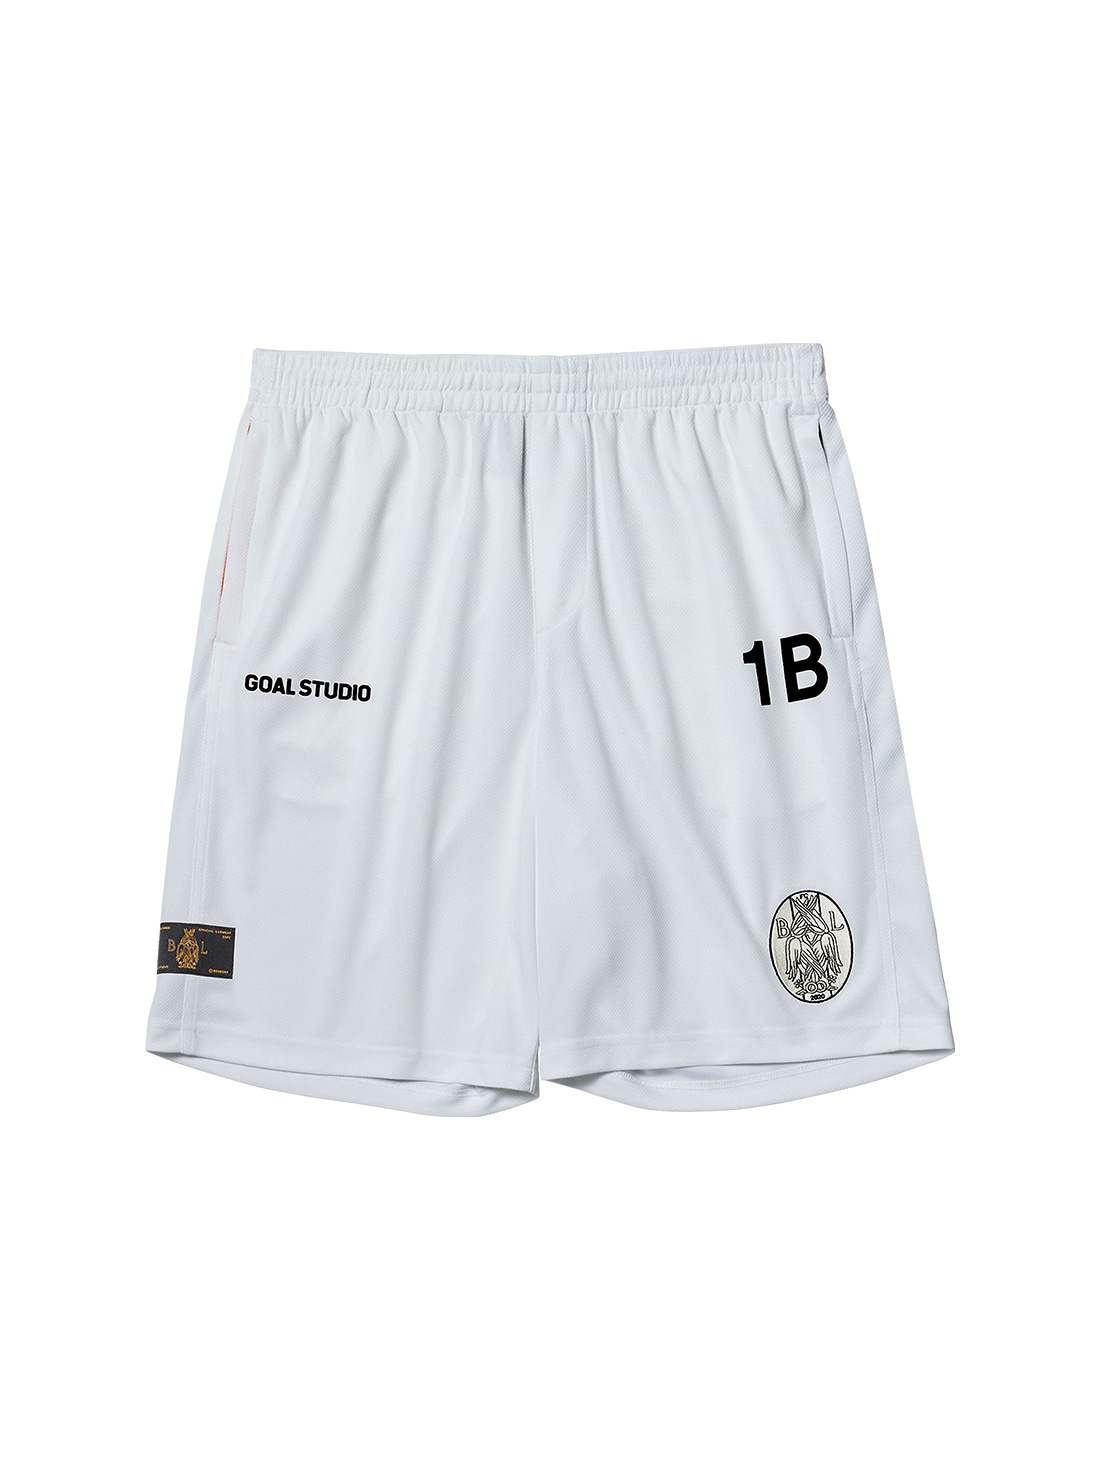 GOALSTUDIO SSFC UNIFORM PANTS - BLACK(B)